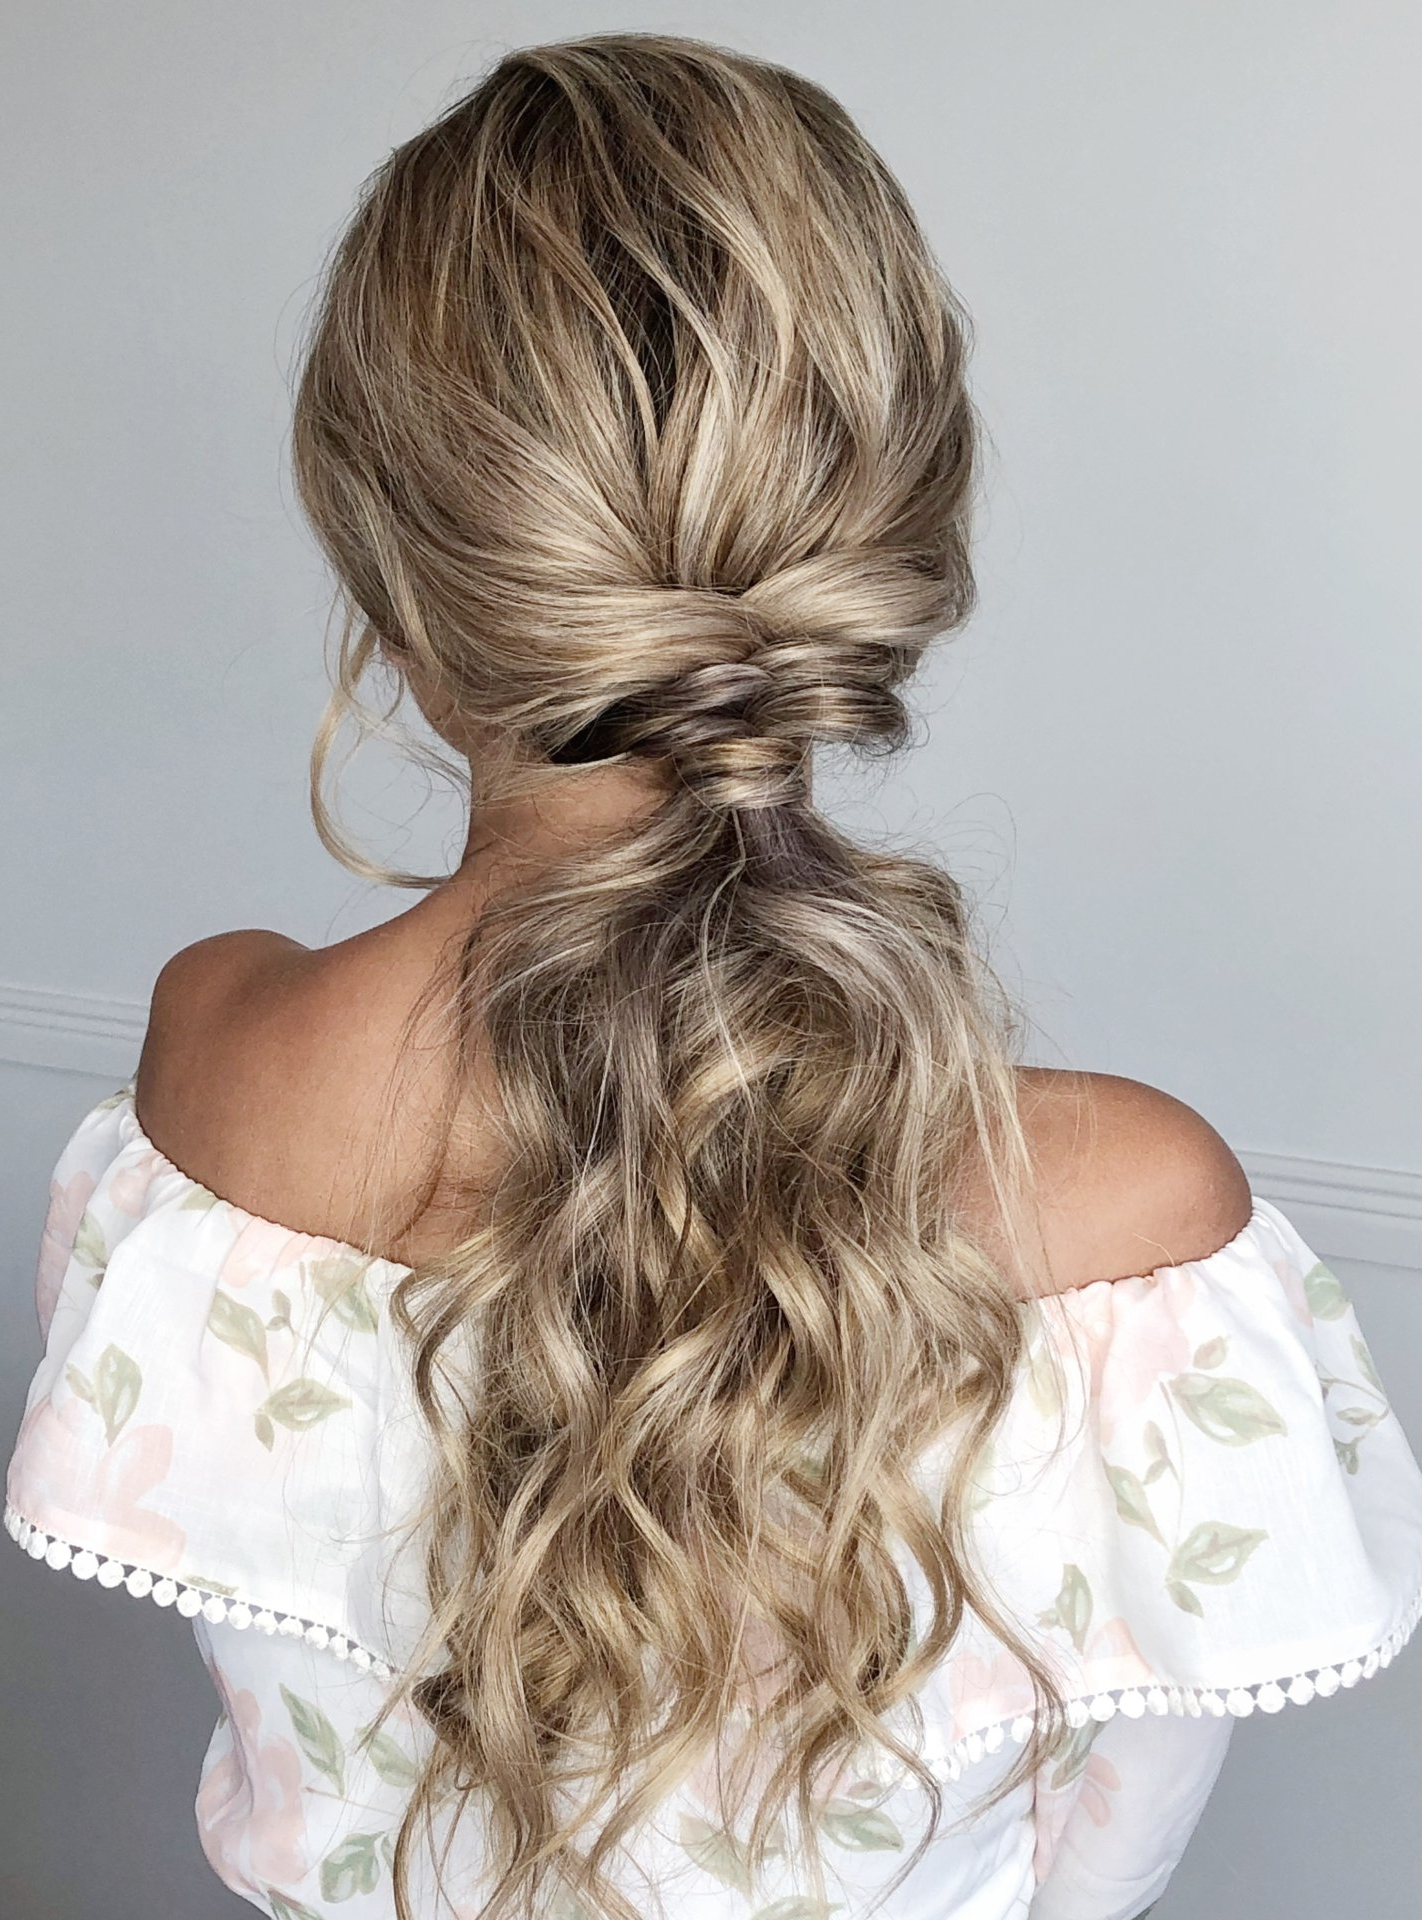 Well Known Mermaid Fishtail Hairstyles With Hair Flowers With Regard To 12 Stunning Beach Boho Hairstyles For Your Big Day (View 11 of 20)